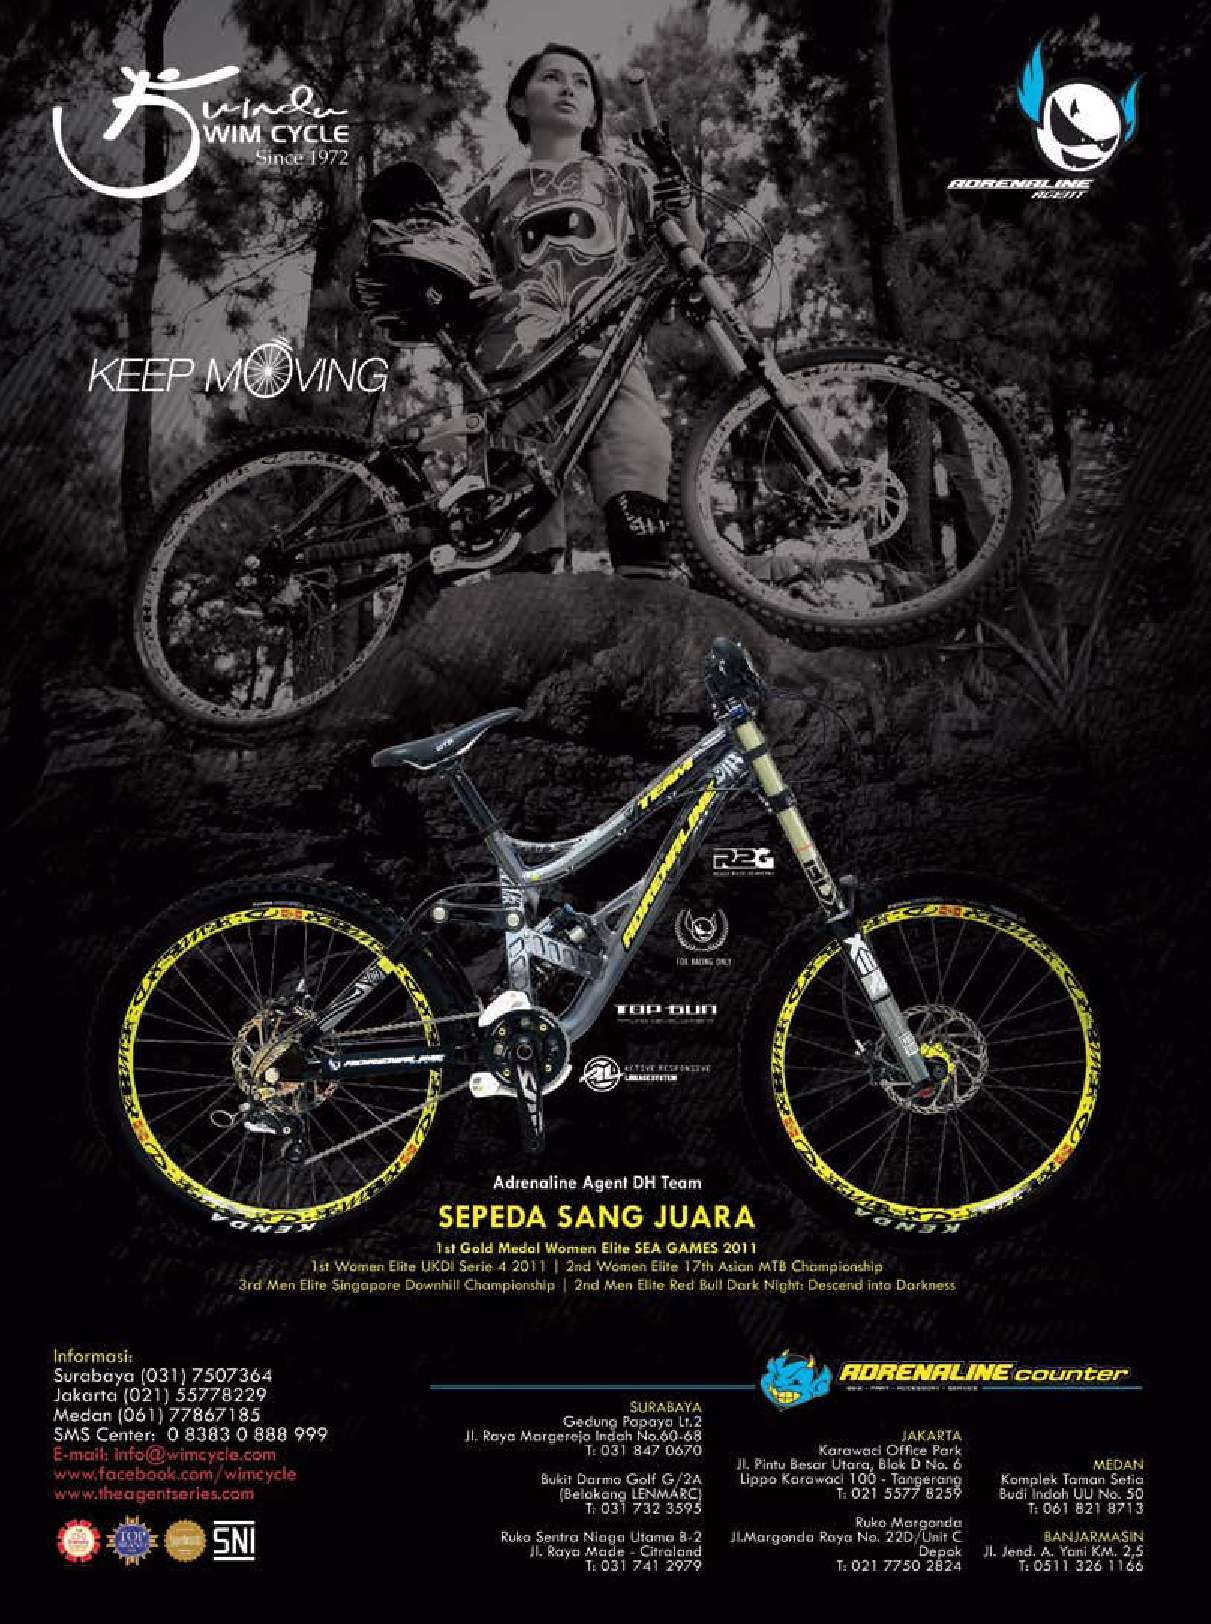 Sepeda Bmx Sni Slb203 Fhm Indonesia Magazine October 2012 Gramedia Digital 3